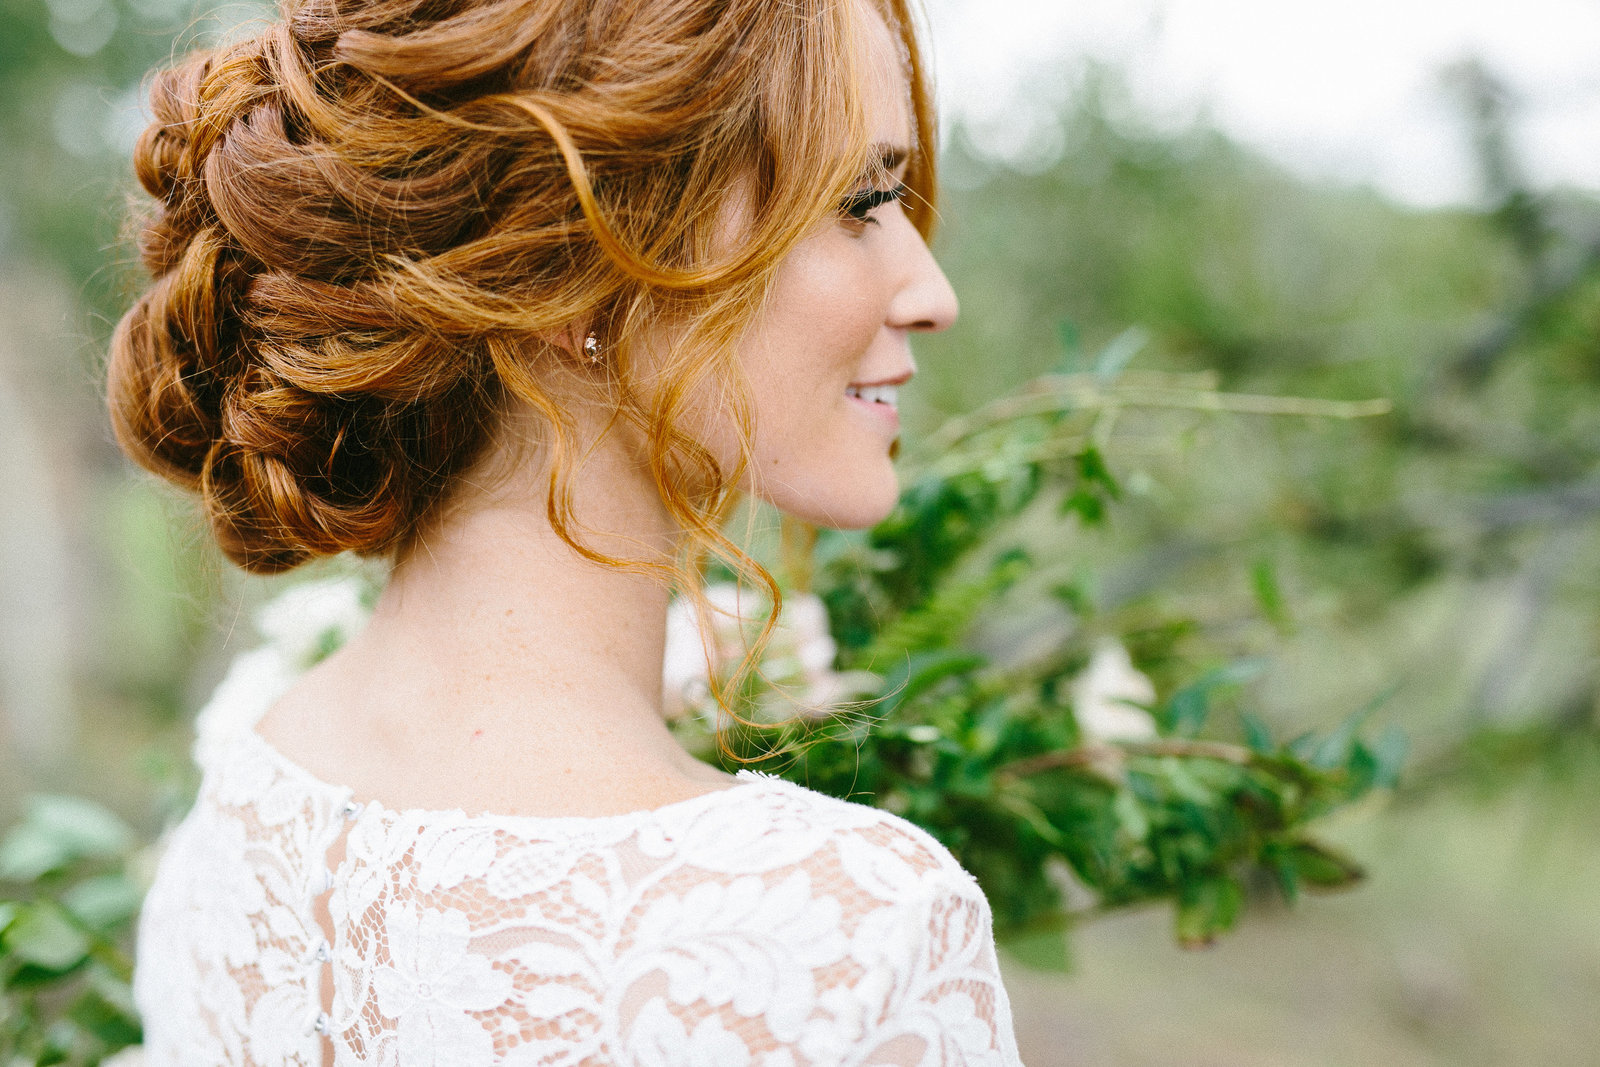 houston wedding photographer becki of smith house photography travelled to colorado for a mountain bridal portrait session with a sarah seven gown